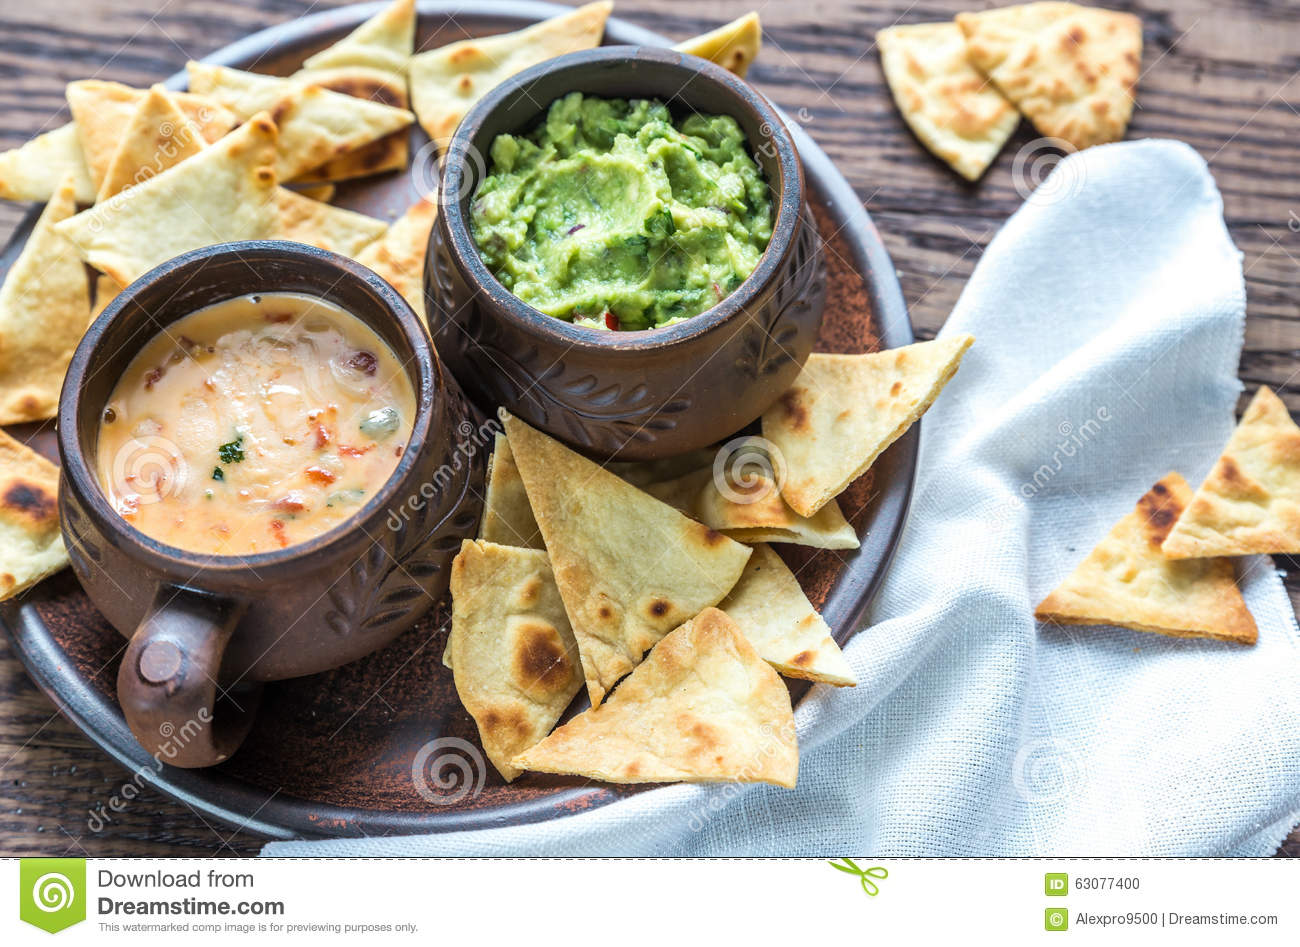 Download Cuvettes De Guacamole Et De Queso Avec Des Puces De Tortilla Photo stock - Image du olive, mexicain: 63077400